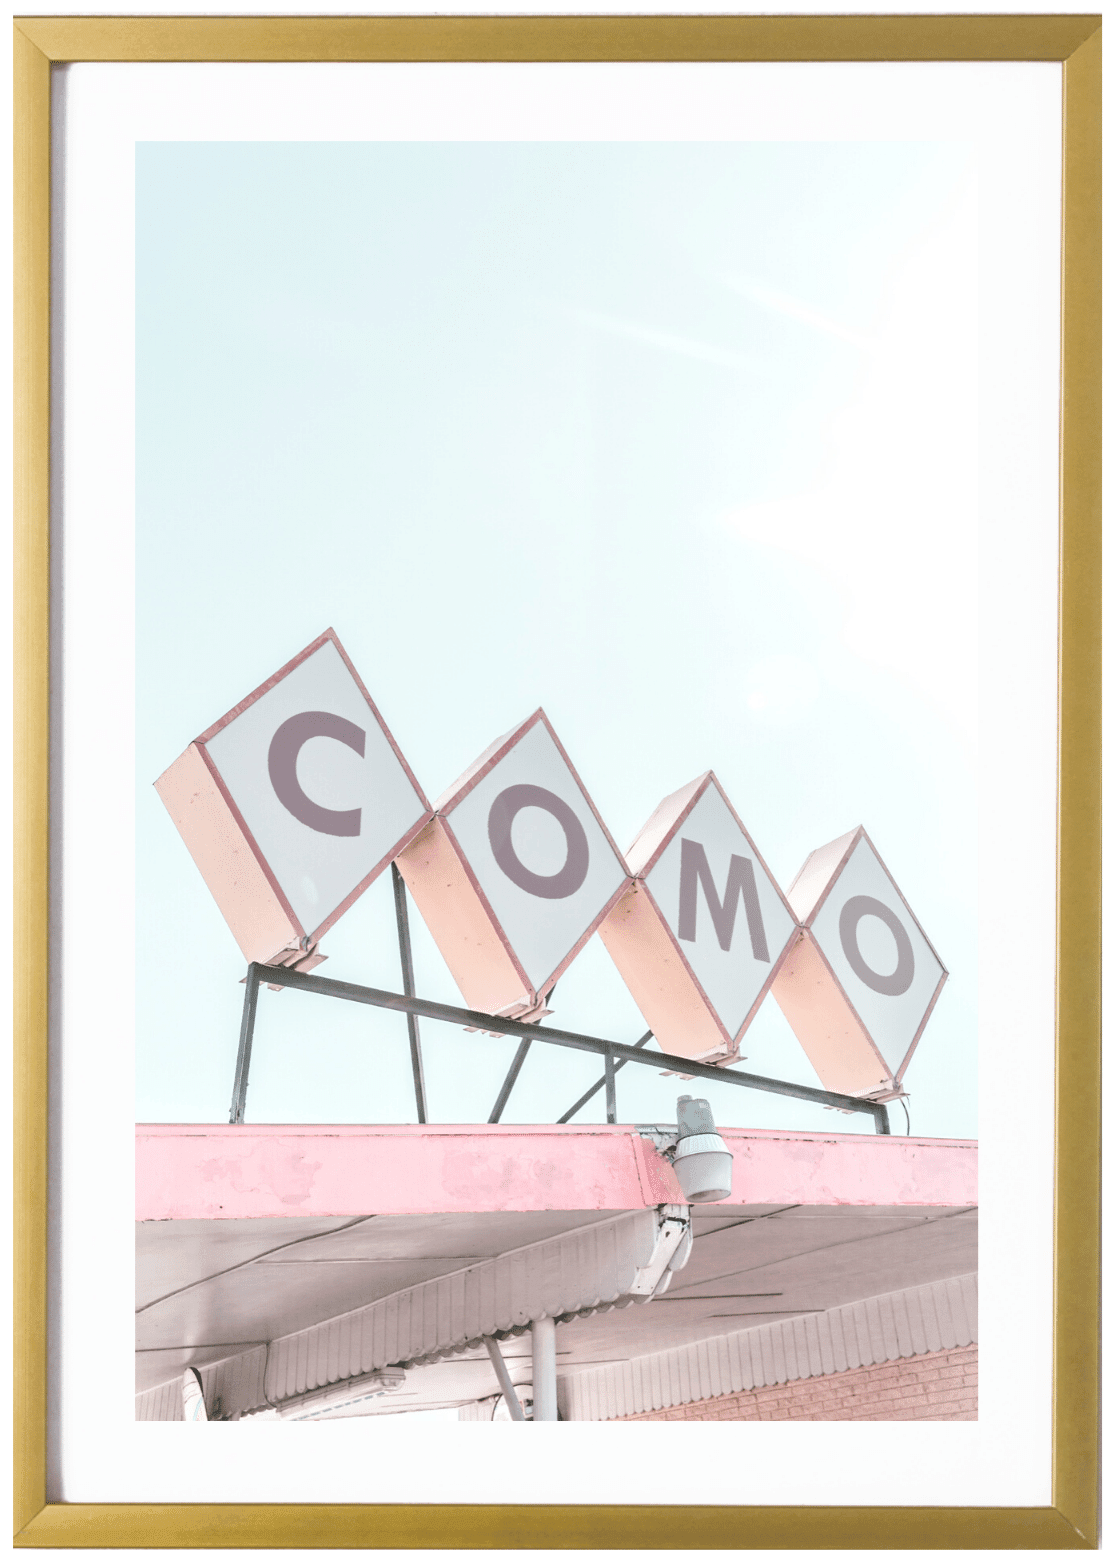 On Sale - Dallas Print - Como #1 8x10